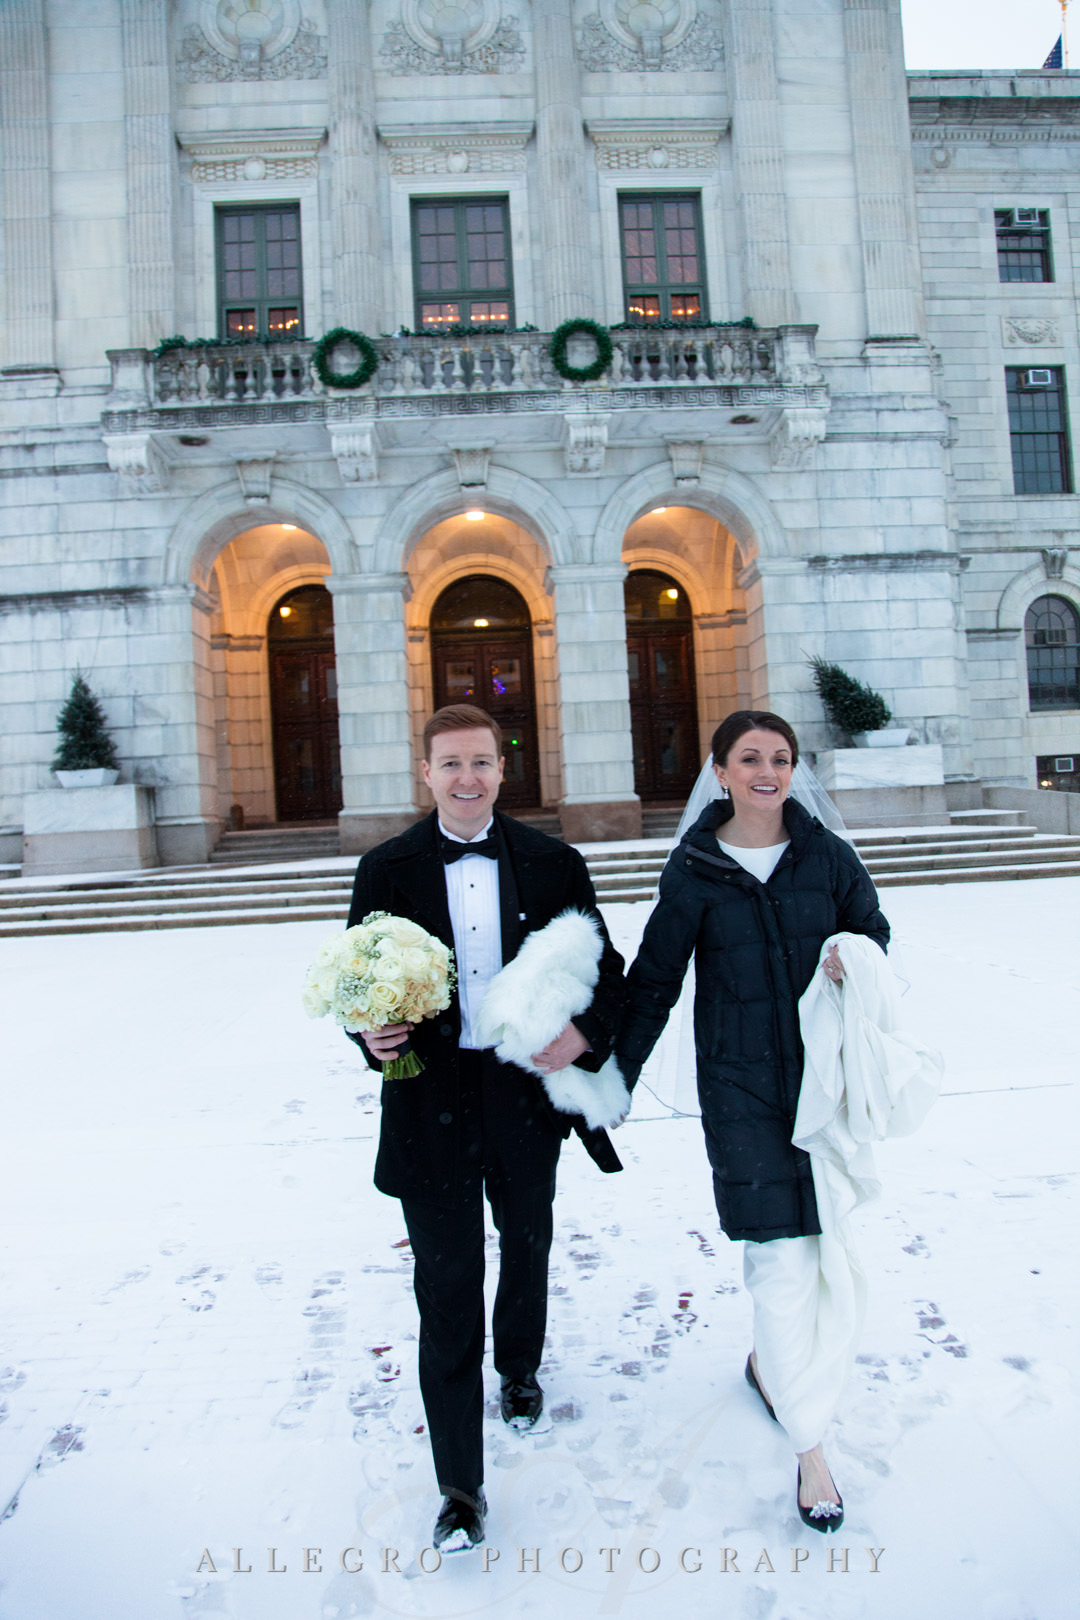 providence rhode island state house- Bride and groom walk in snowy Providence, RI